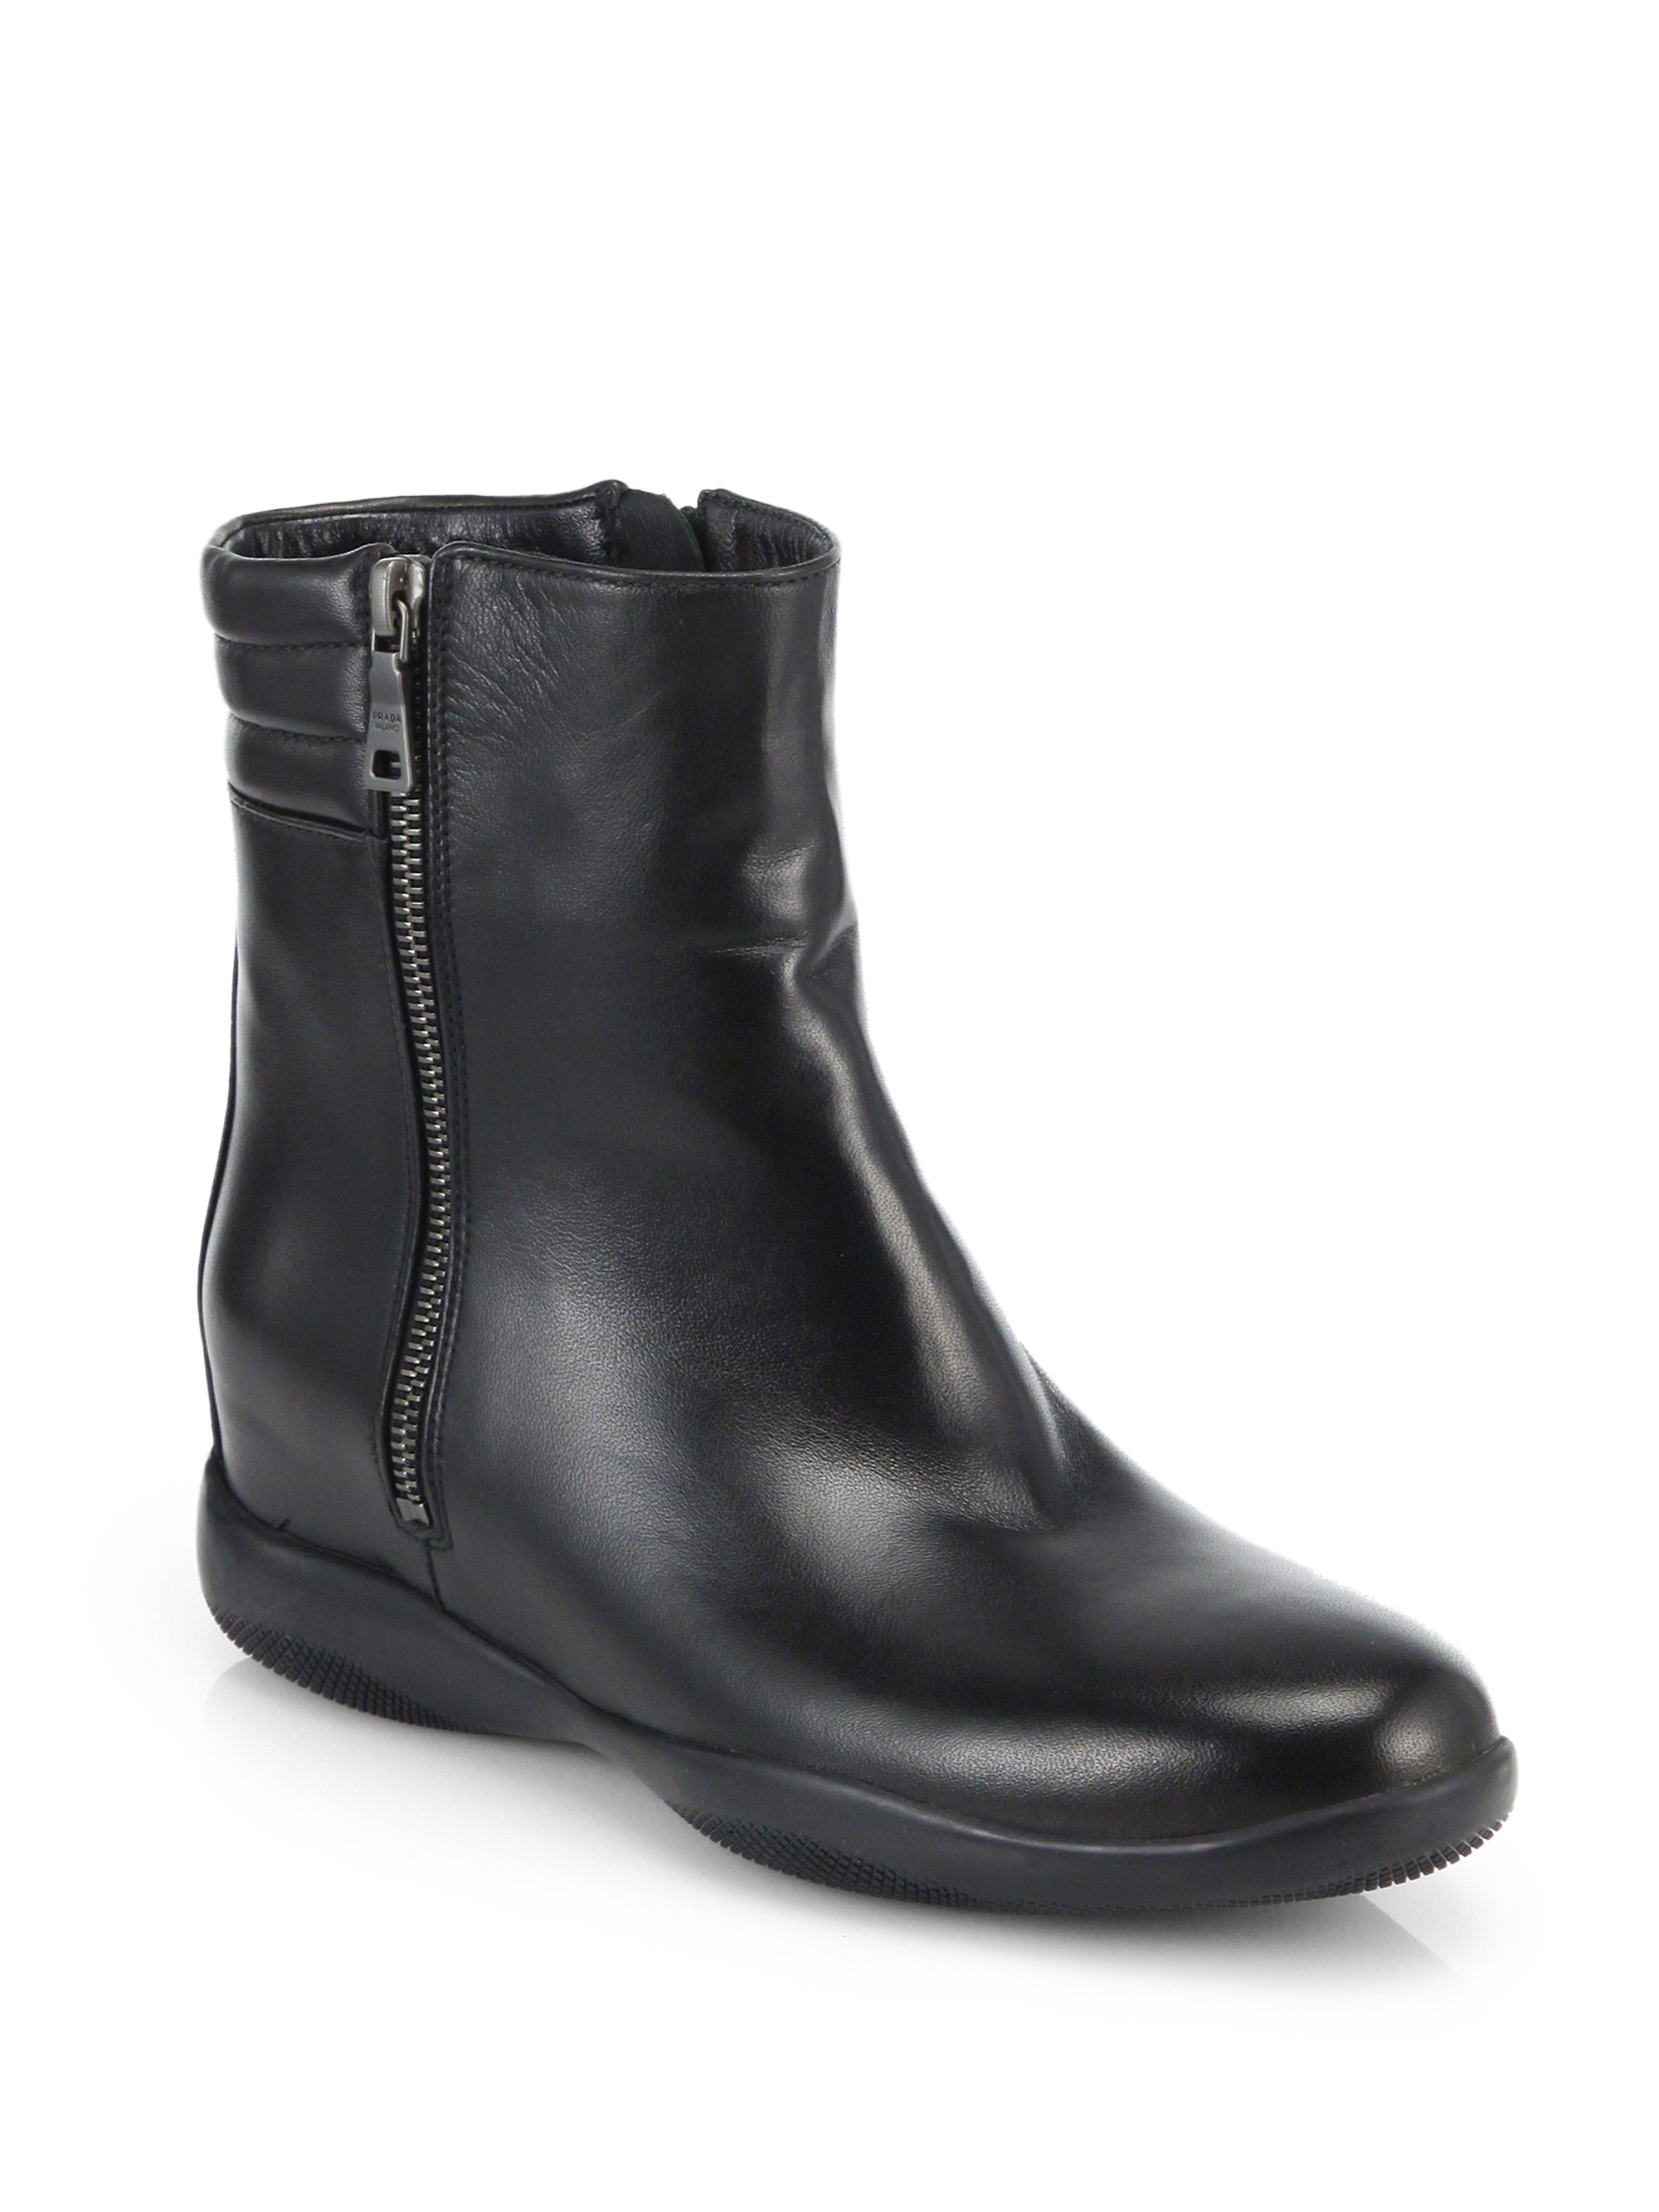 prada leather ankle boots in black lyst